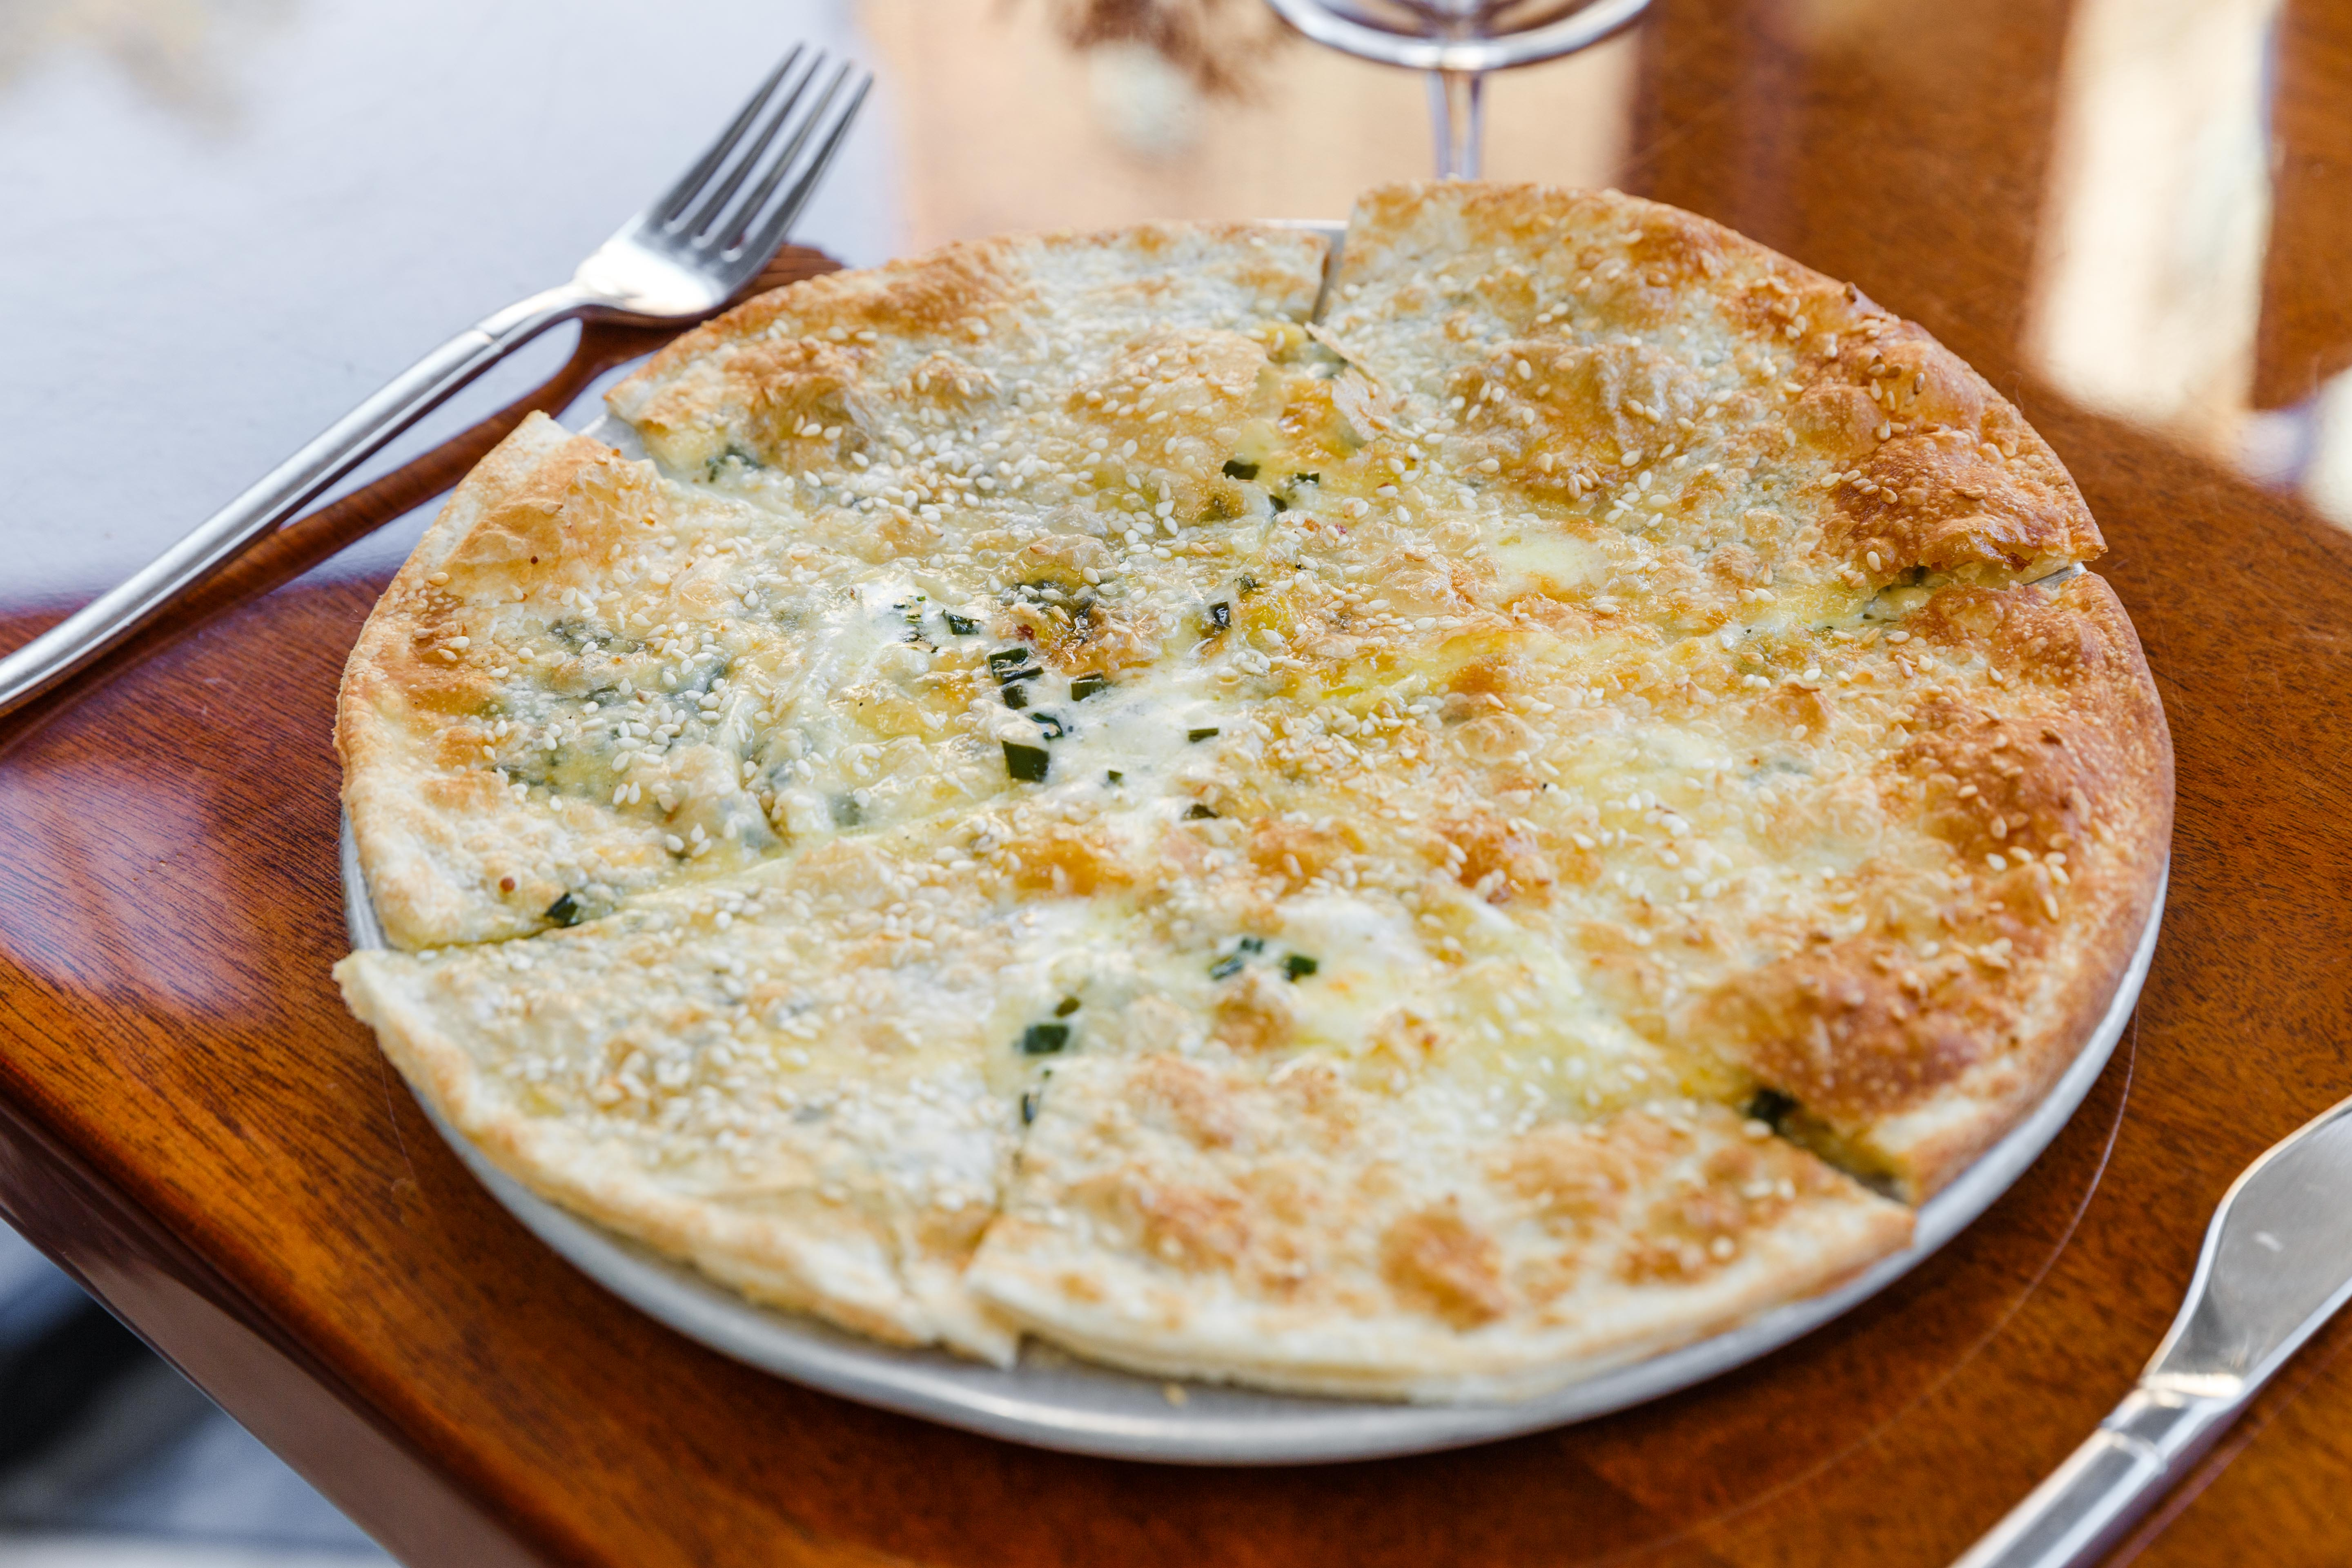 A round, sesame-studded flatbread is cut up into slices on a big plate on a reddish wooden table.